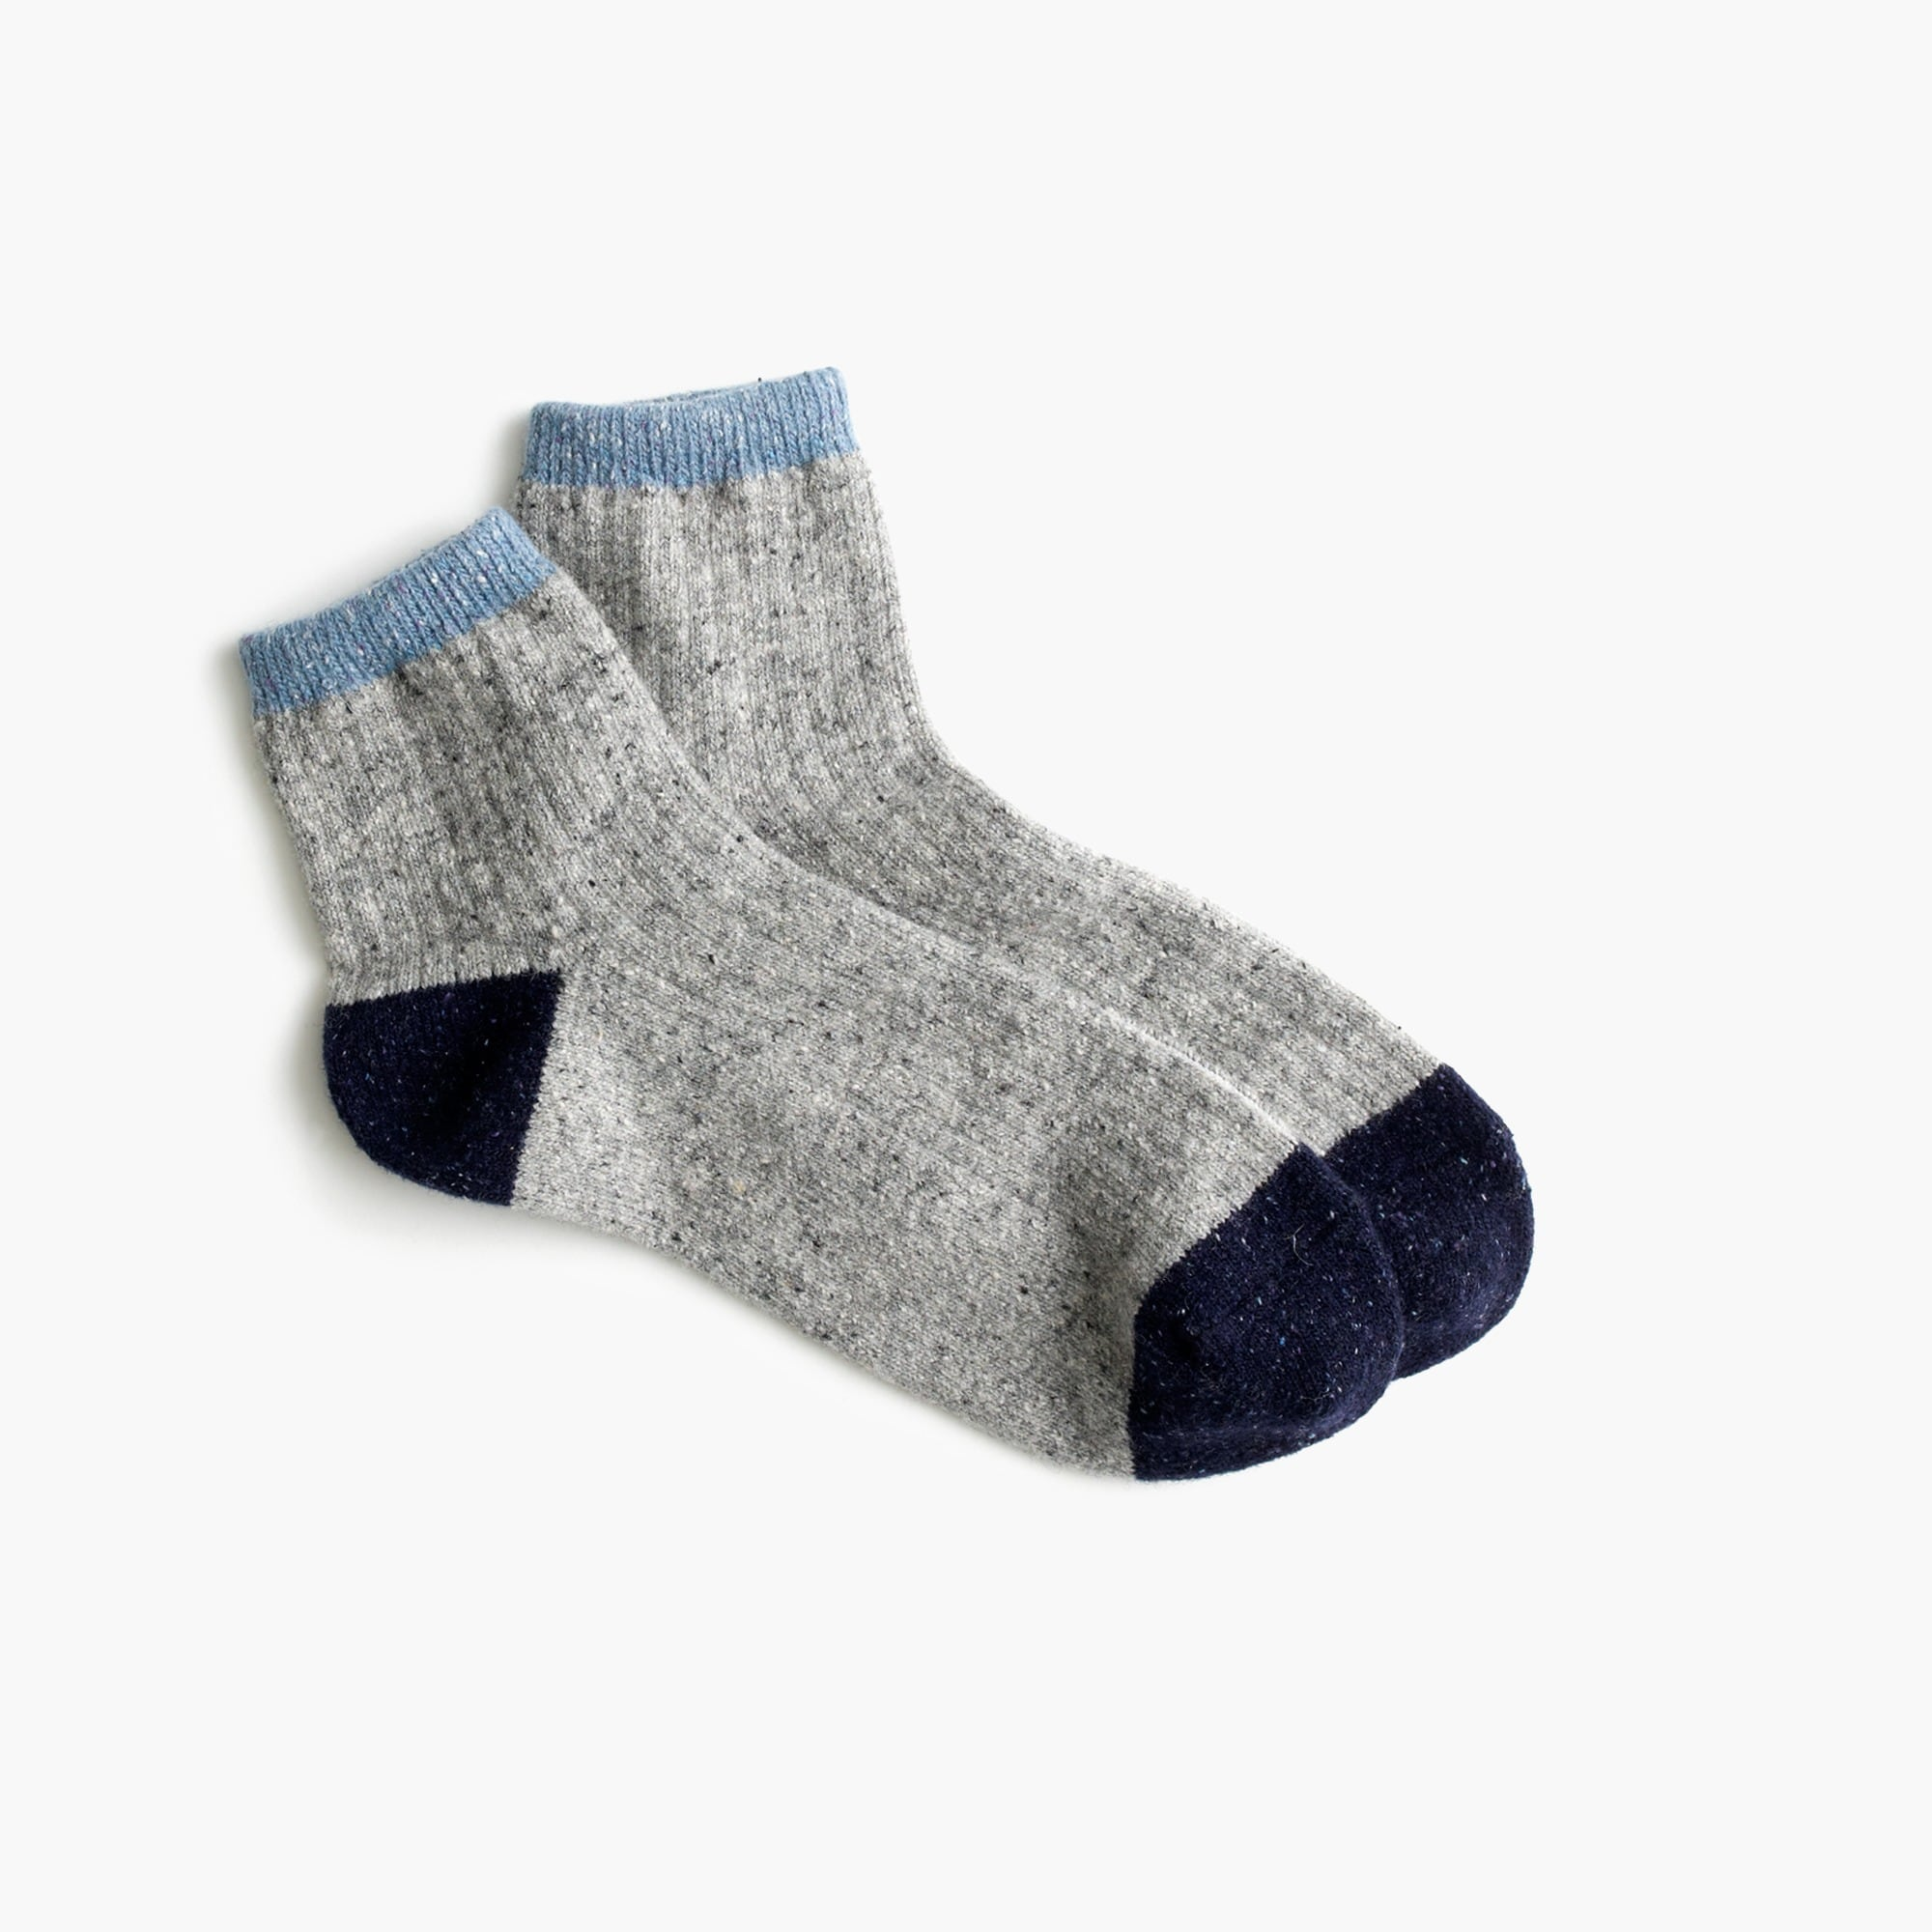 Image 1 for Colorblock ankle socks